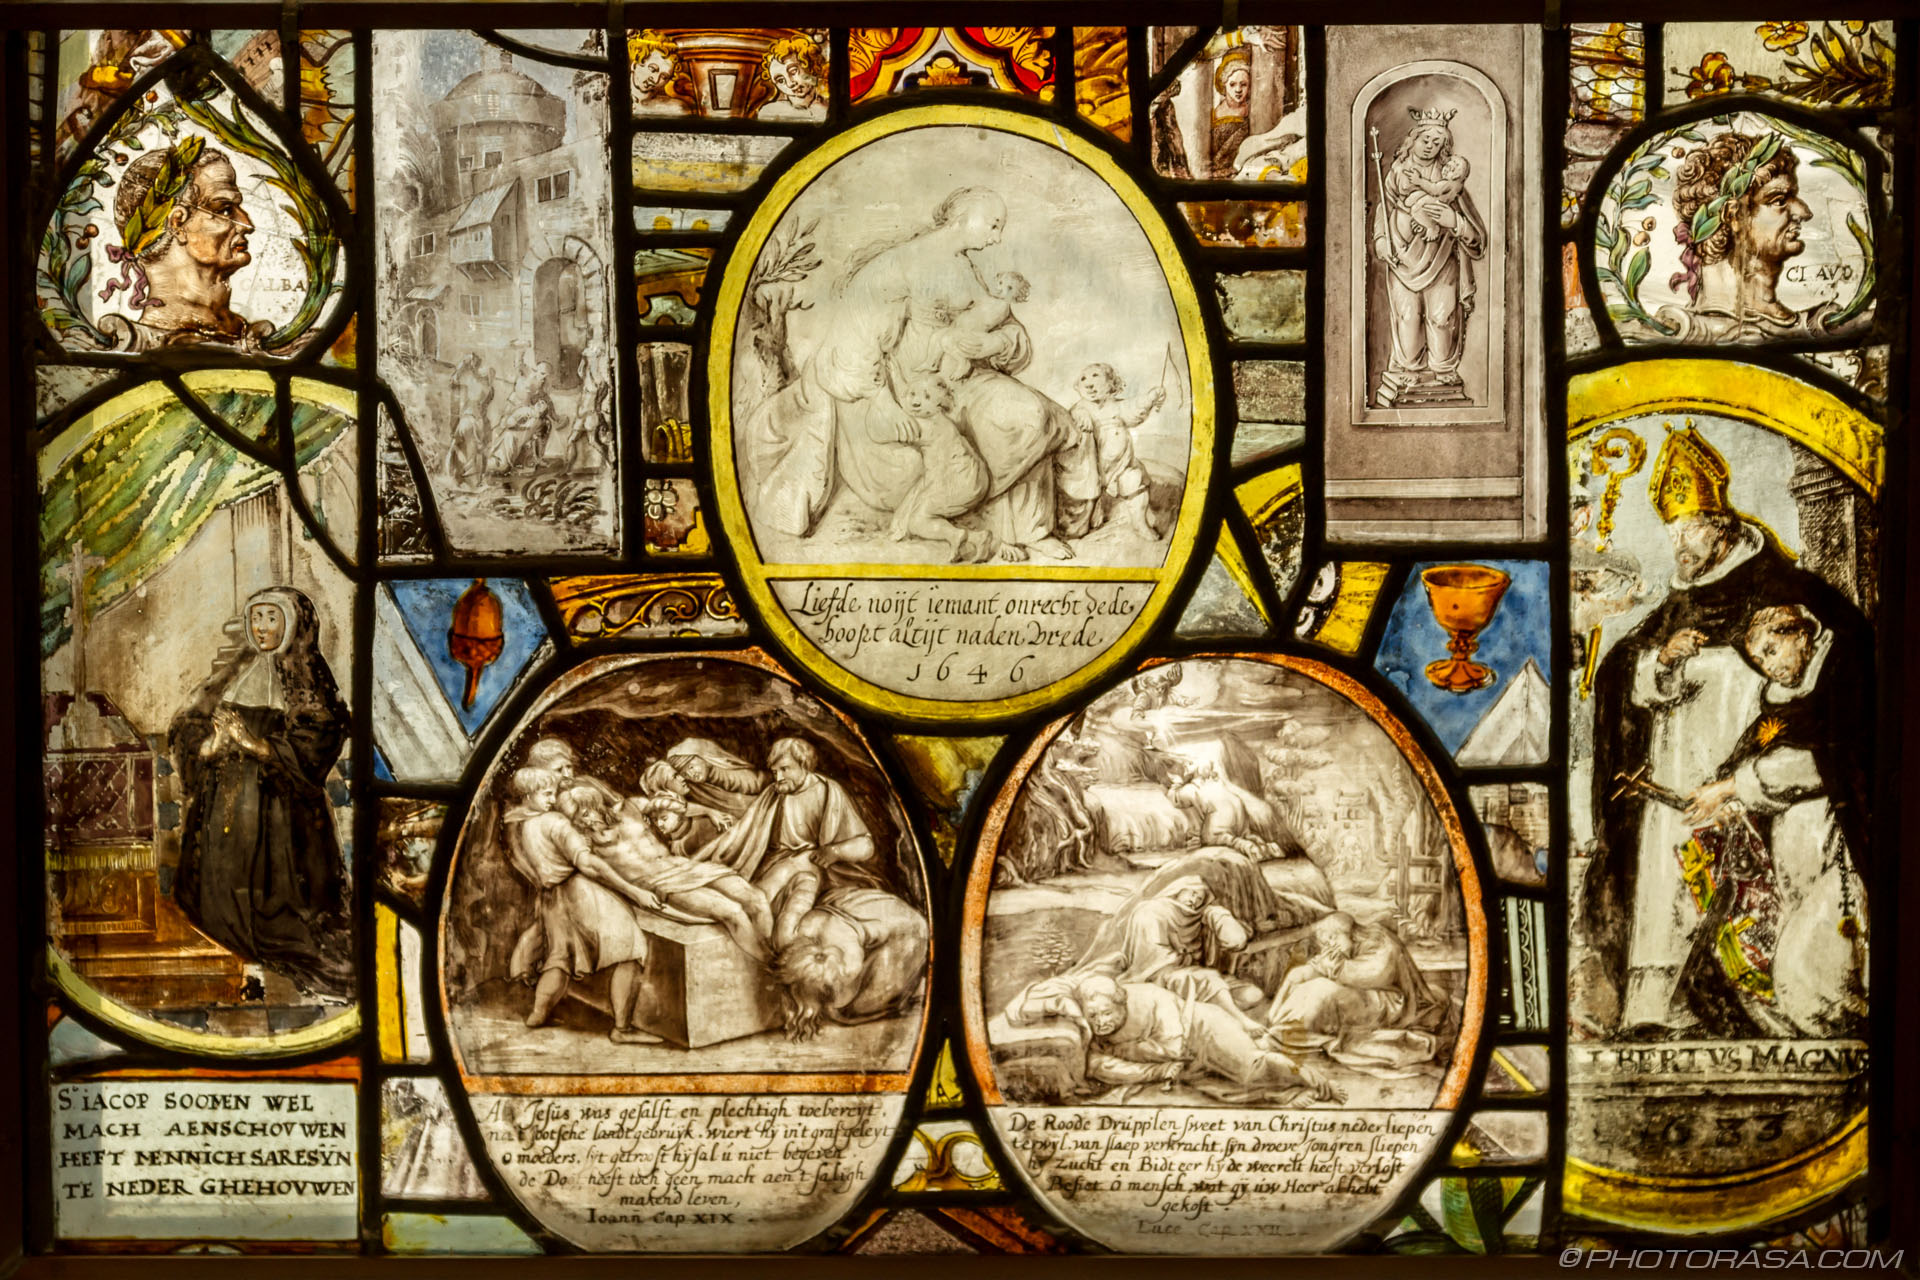 https://photorasa.com/old-dutch-and-flemish-stained-glass/dutch-stained-glass-of-biblical-scenes/